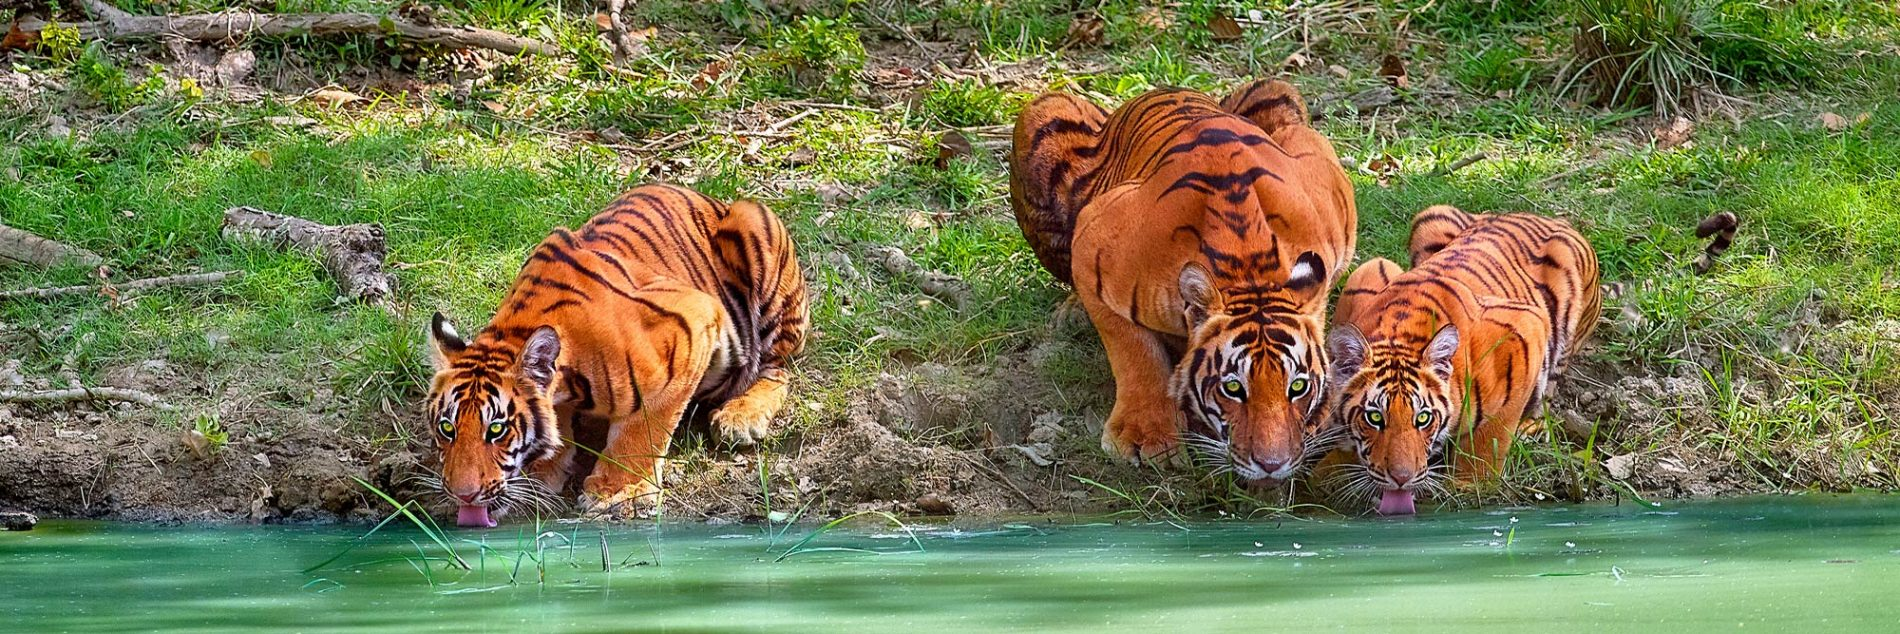 A mother tiger keeps guard while her cubs drinks from the waterhole